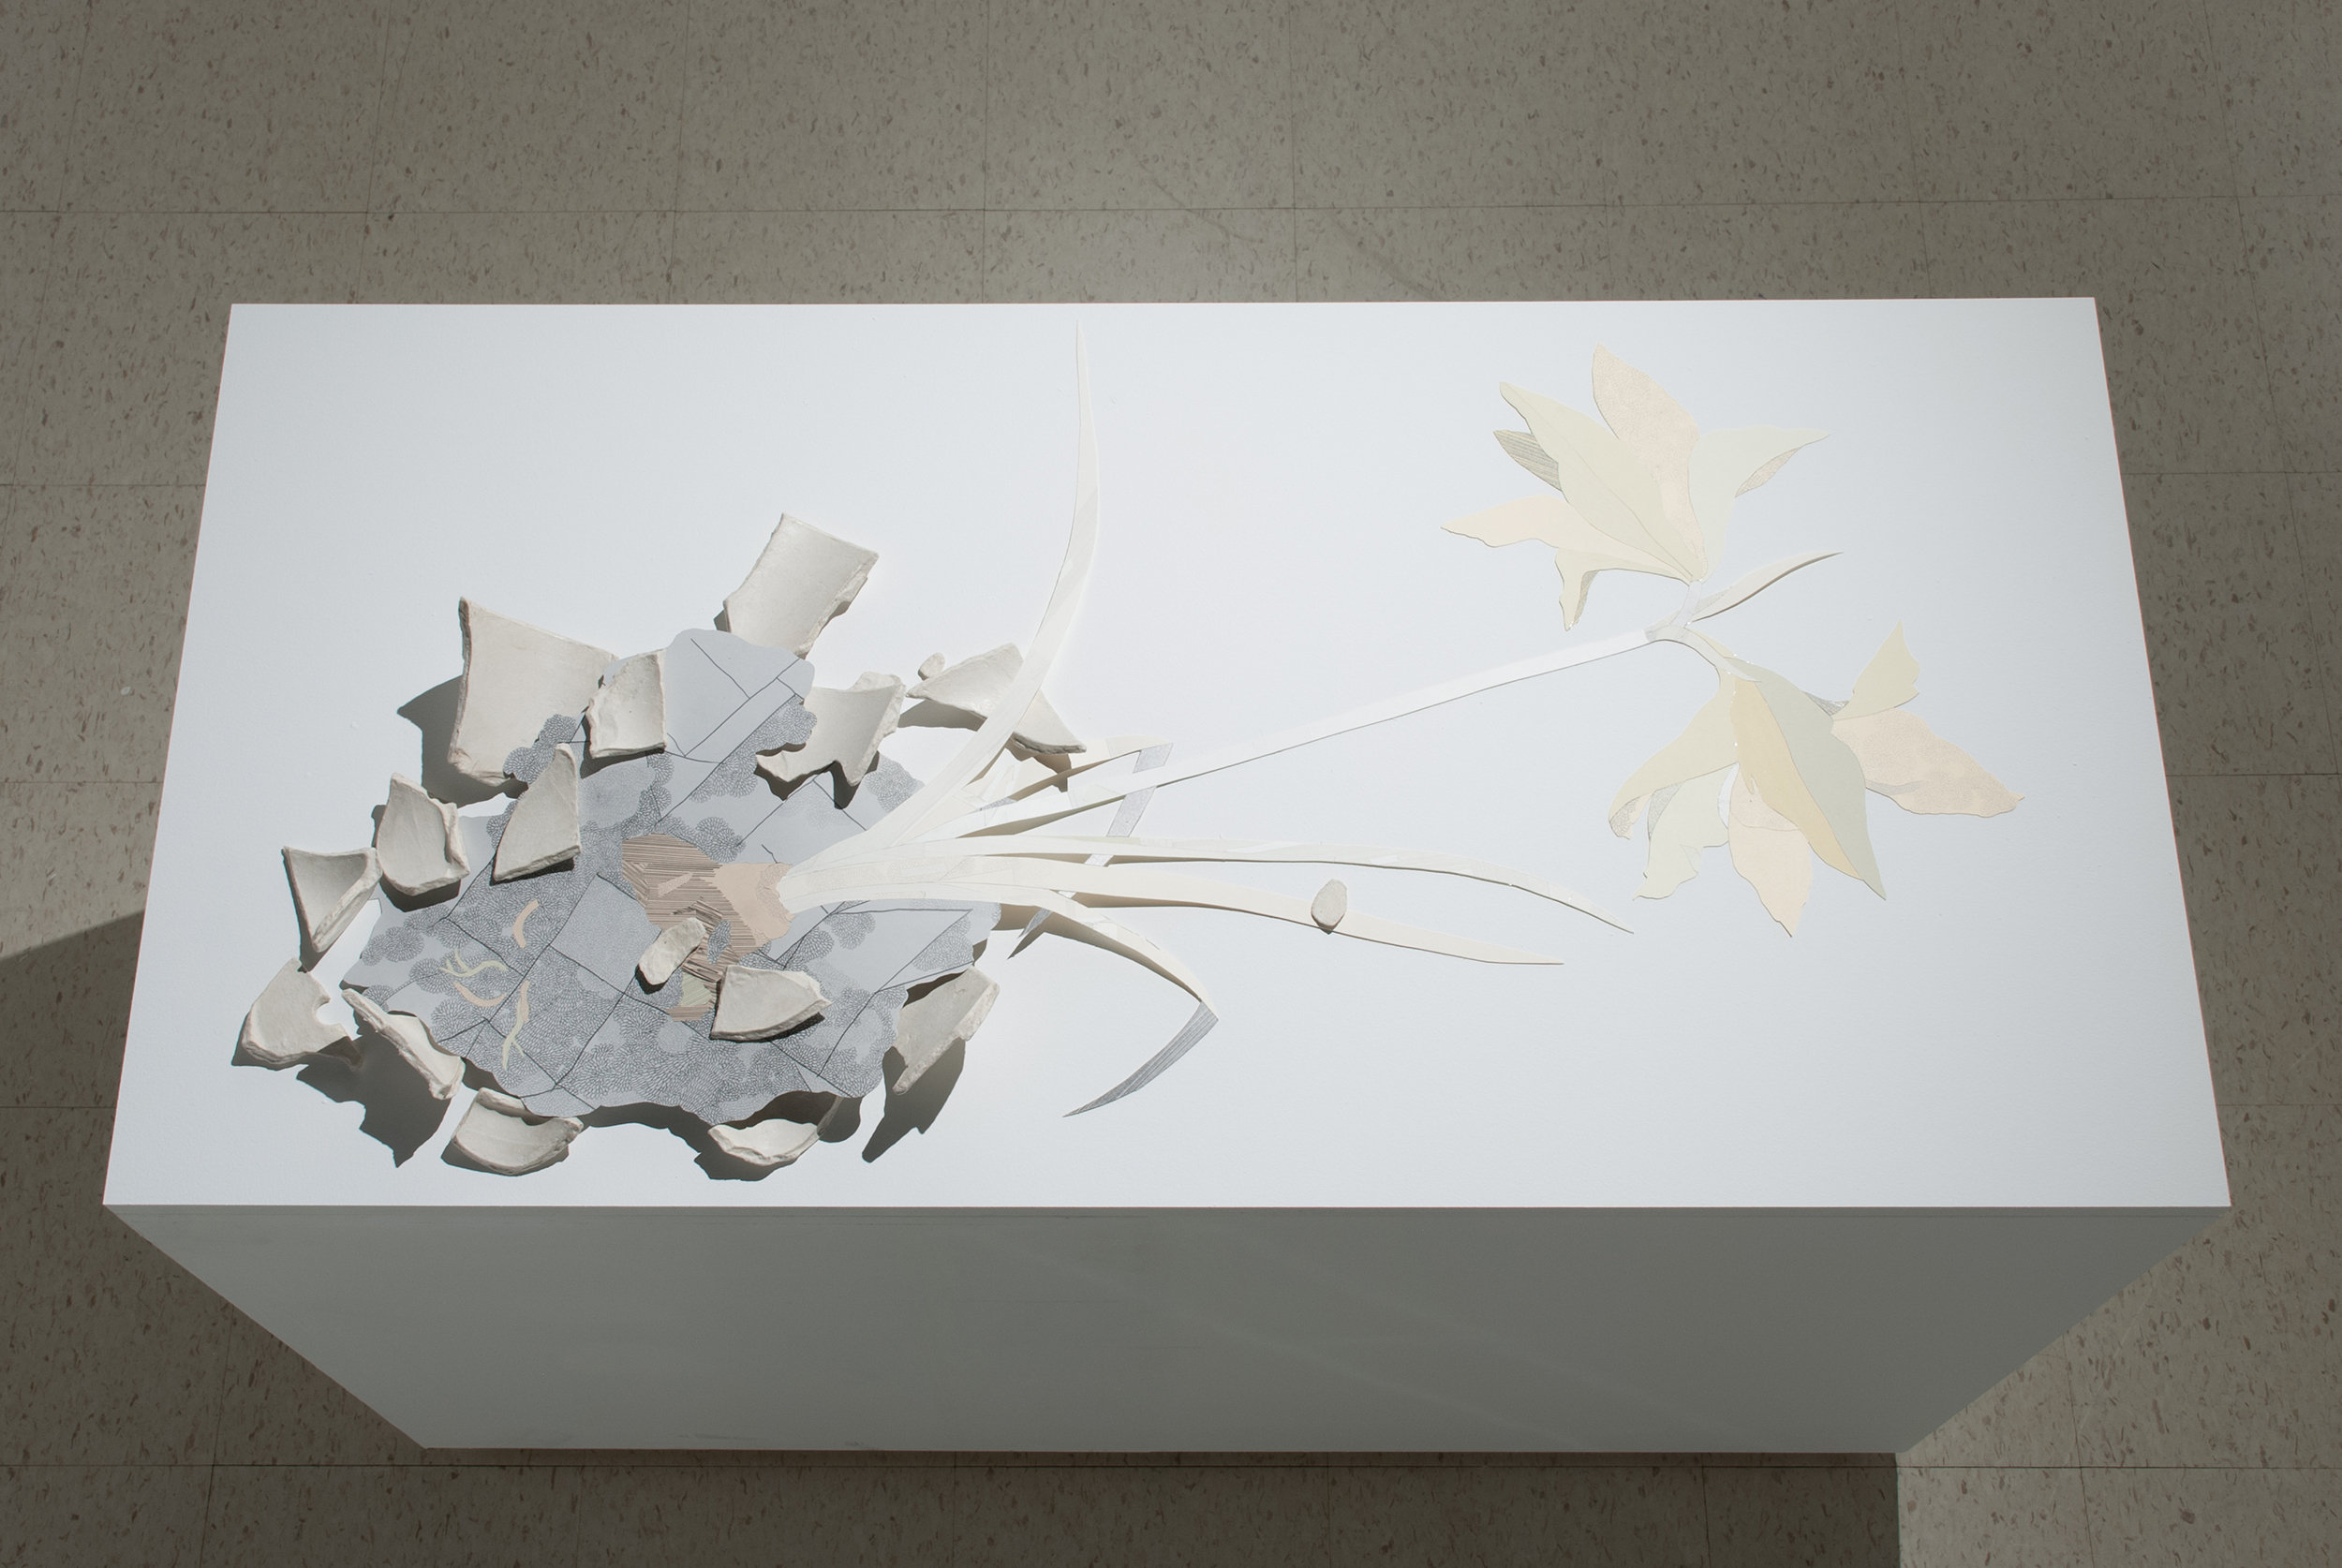 Untitled (Broken Flower)